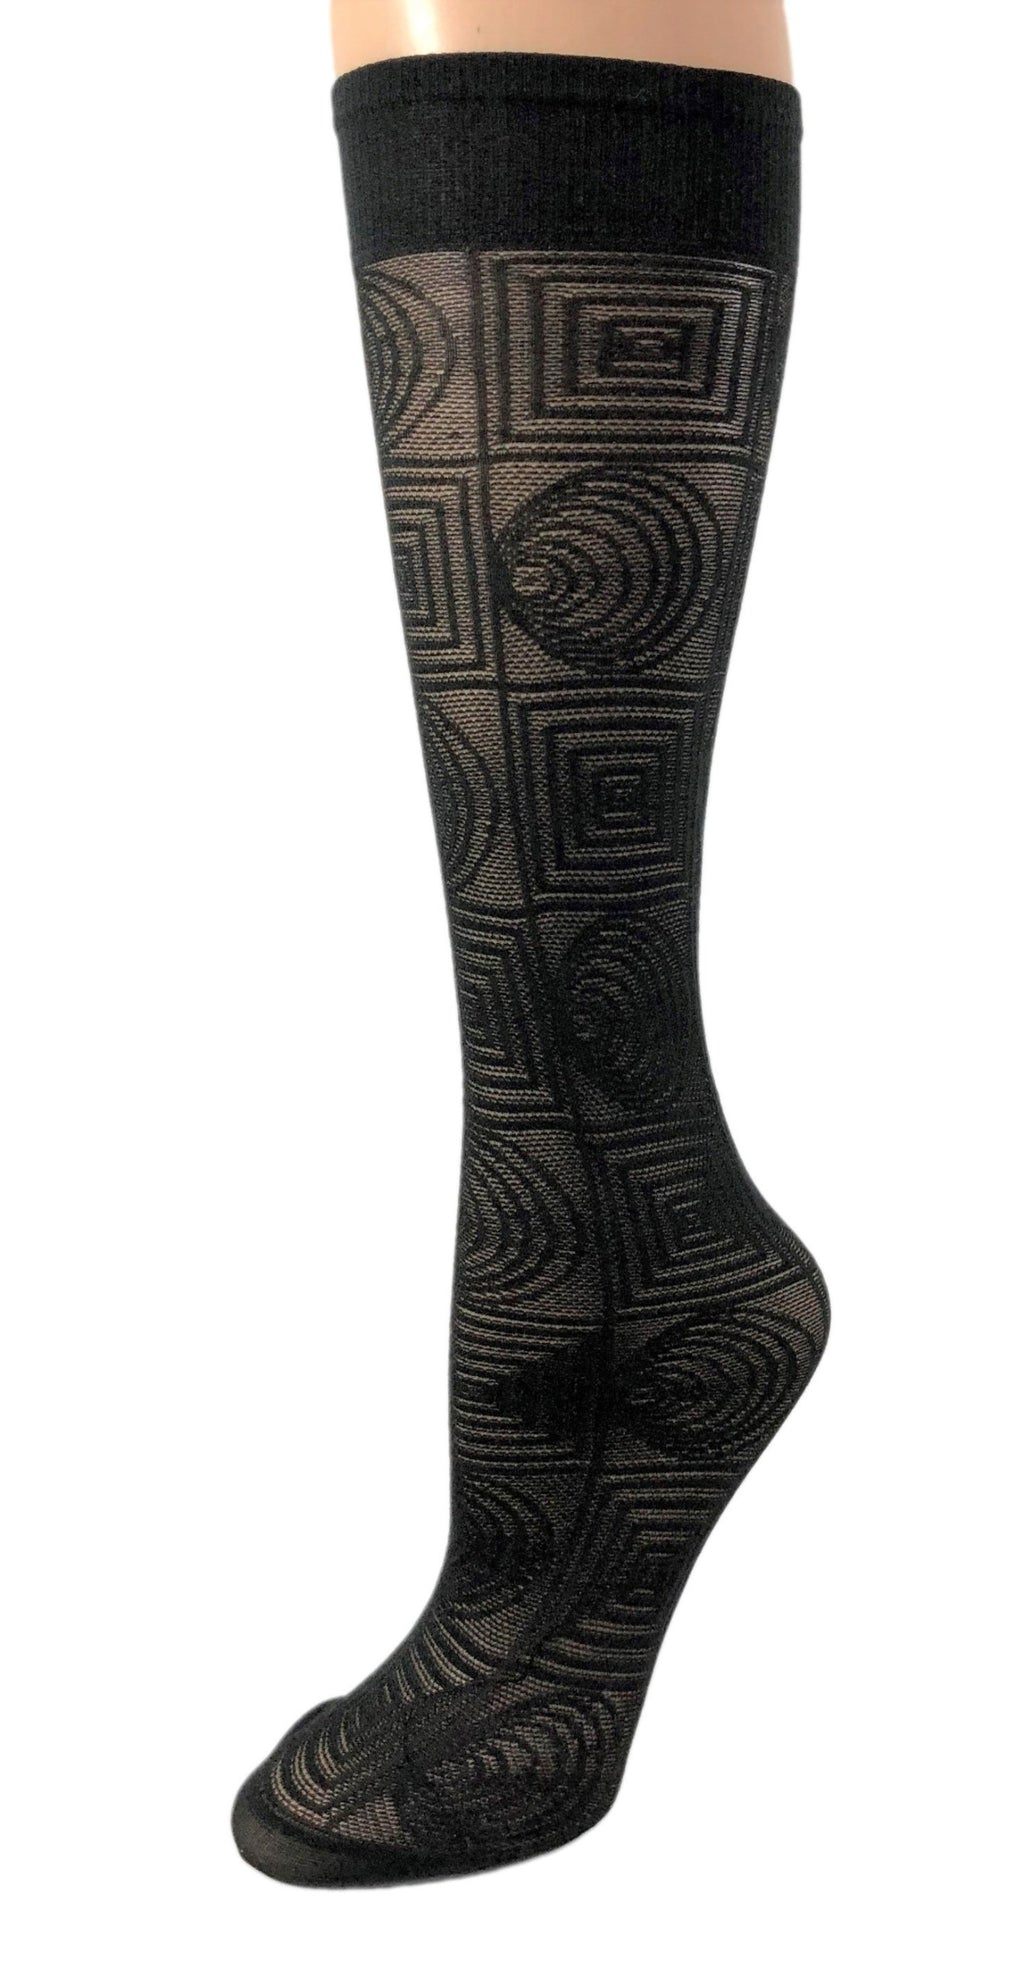 Cute Black knee high Socks - Global Trendz Fashion®